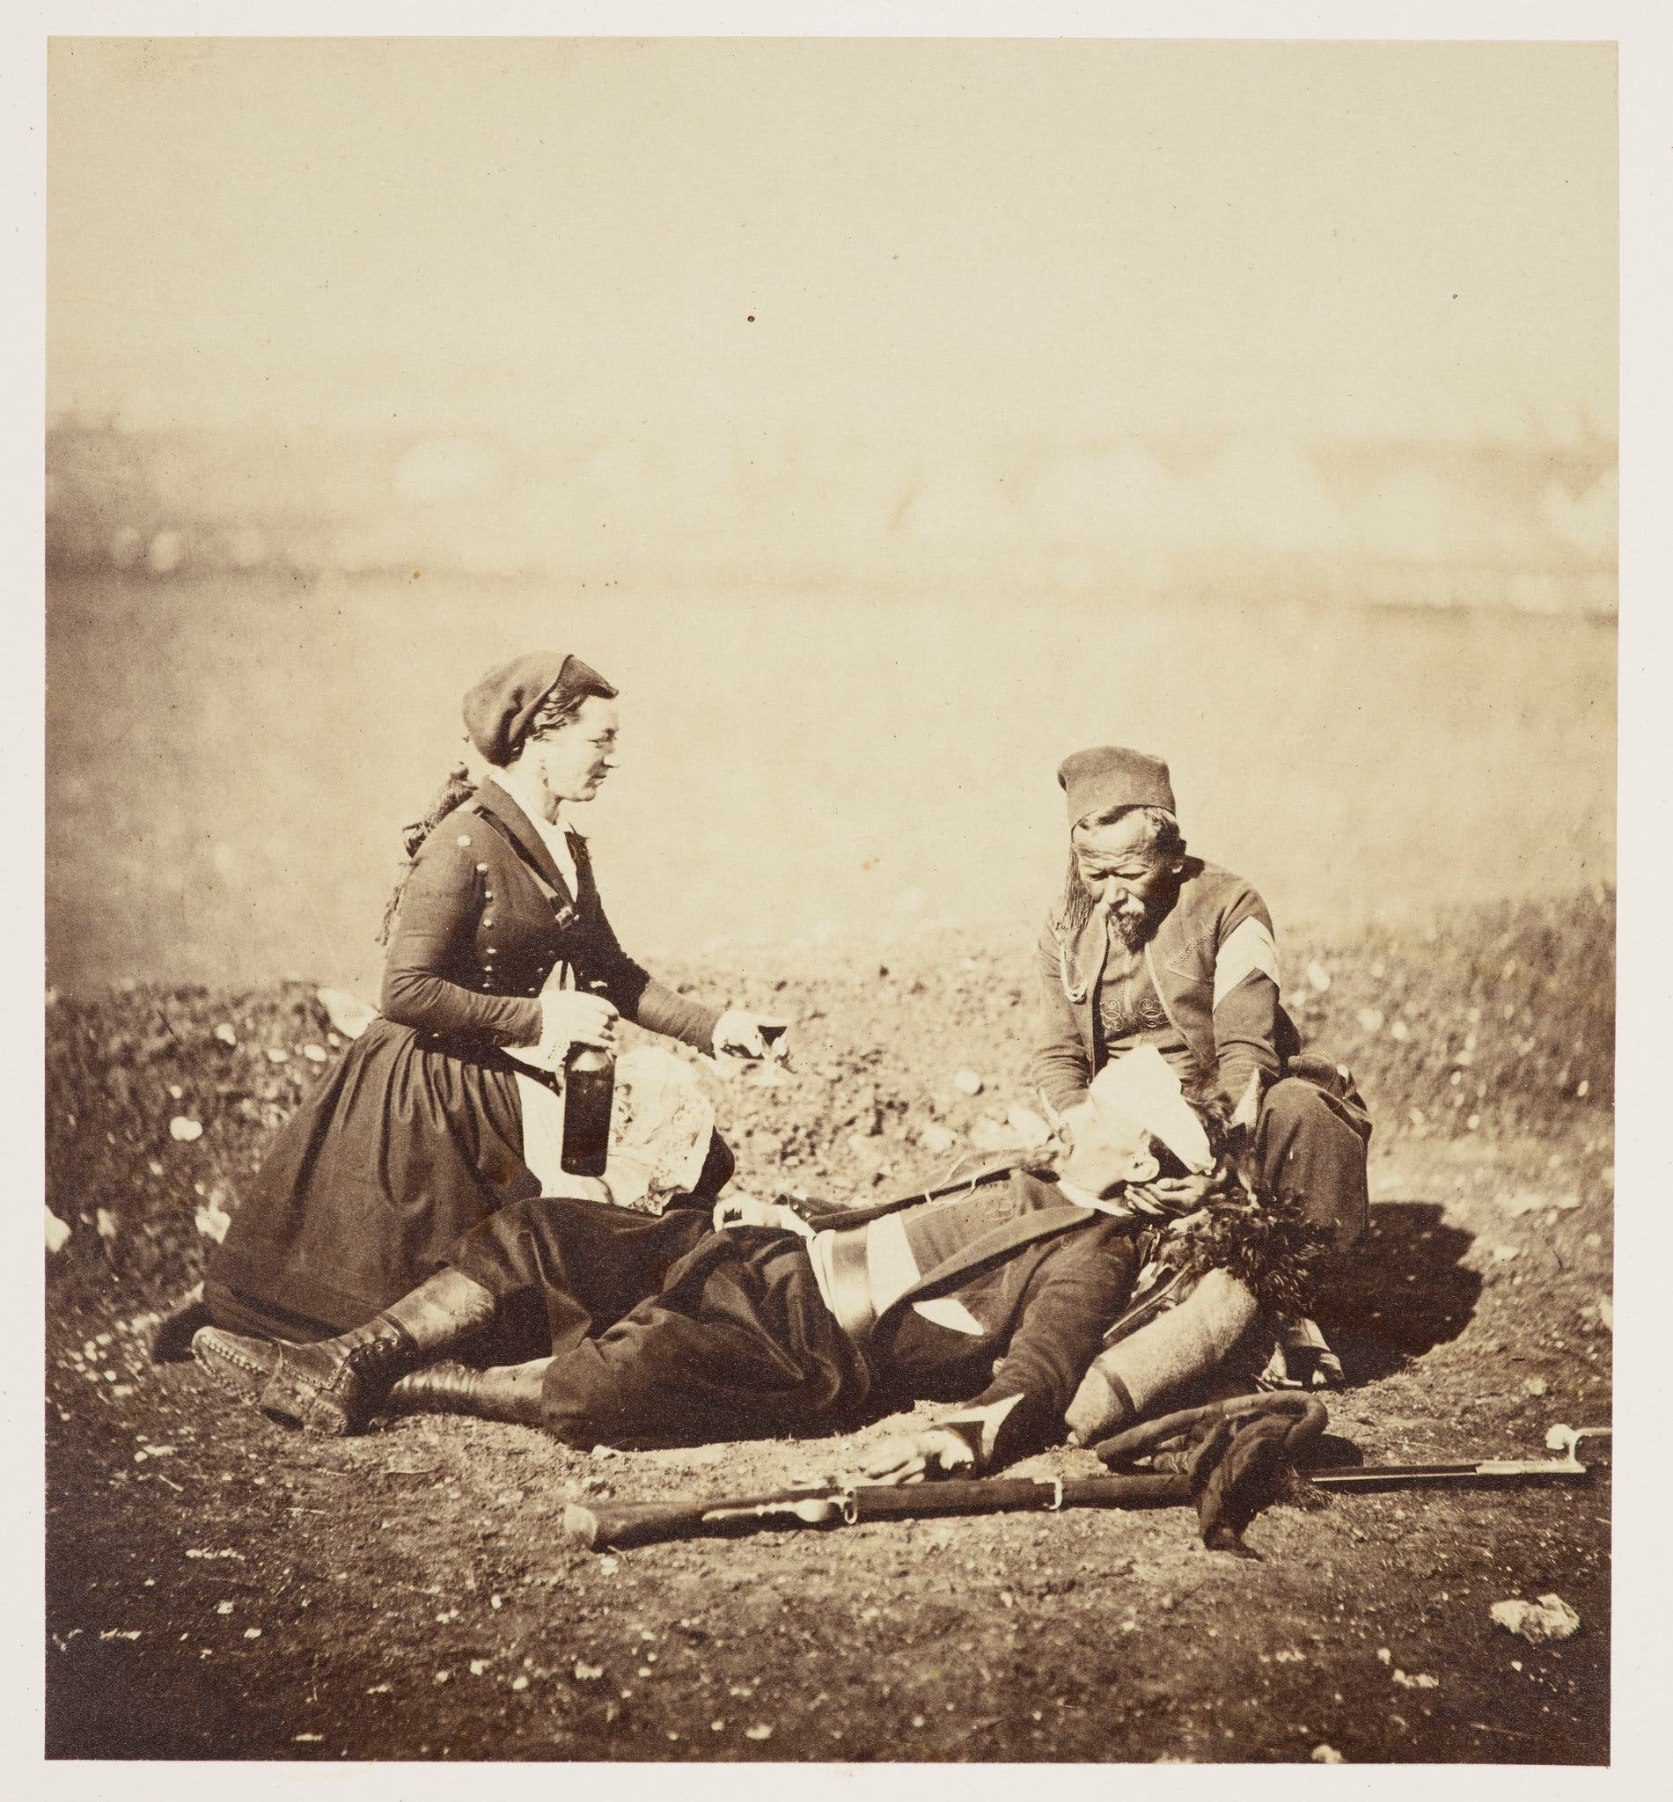 Wounded Zouave and Vivandiere, May 5, 1855.